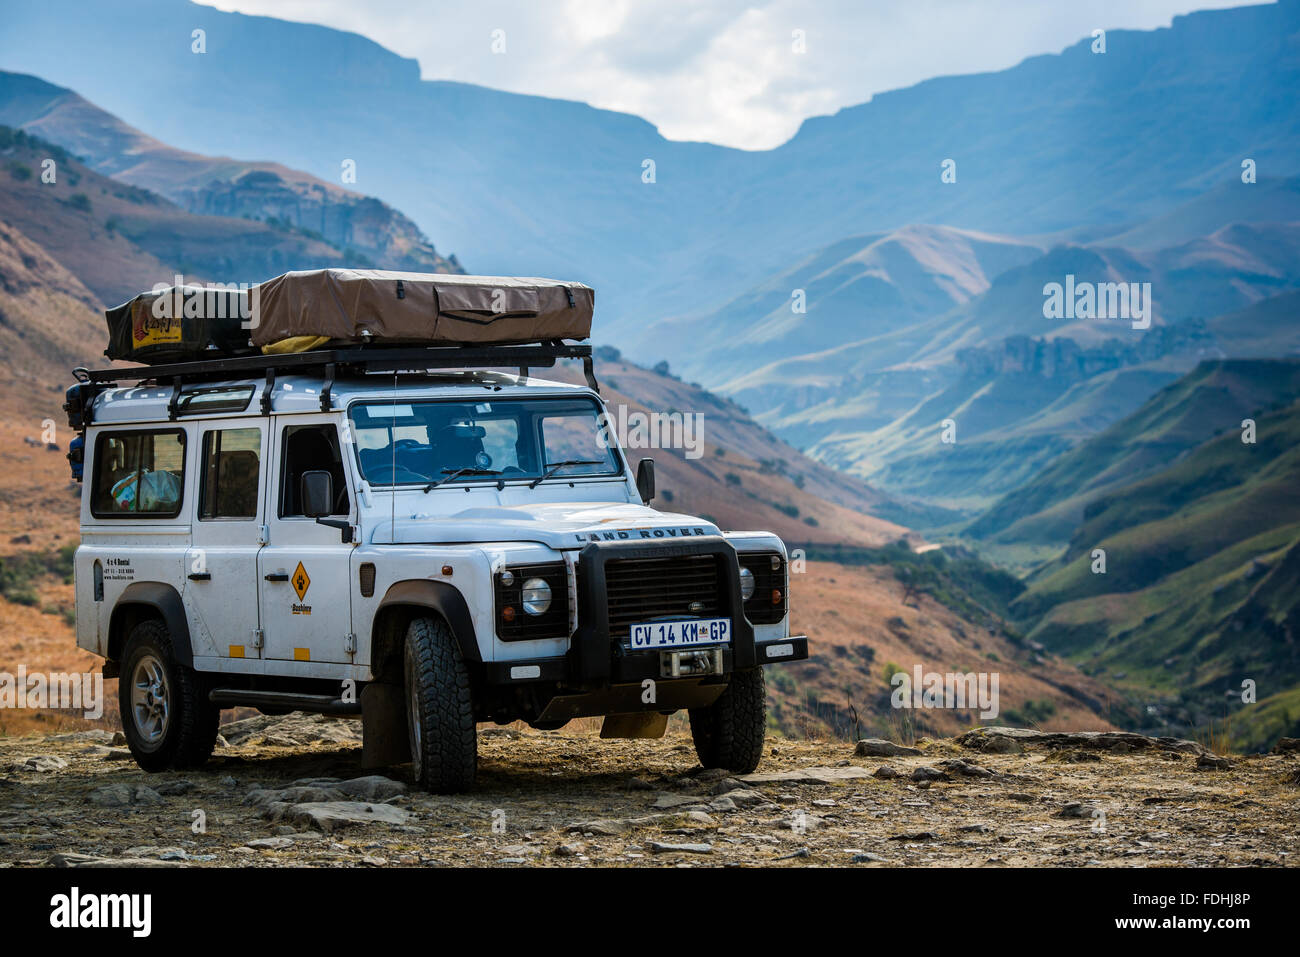 Land Rover Defender Parked With Mountains In The